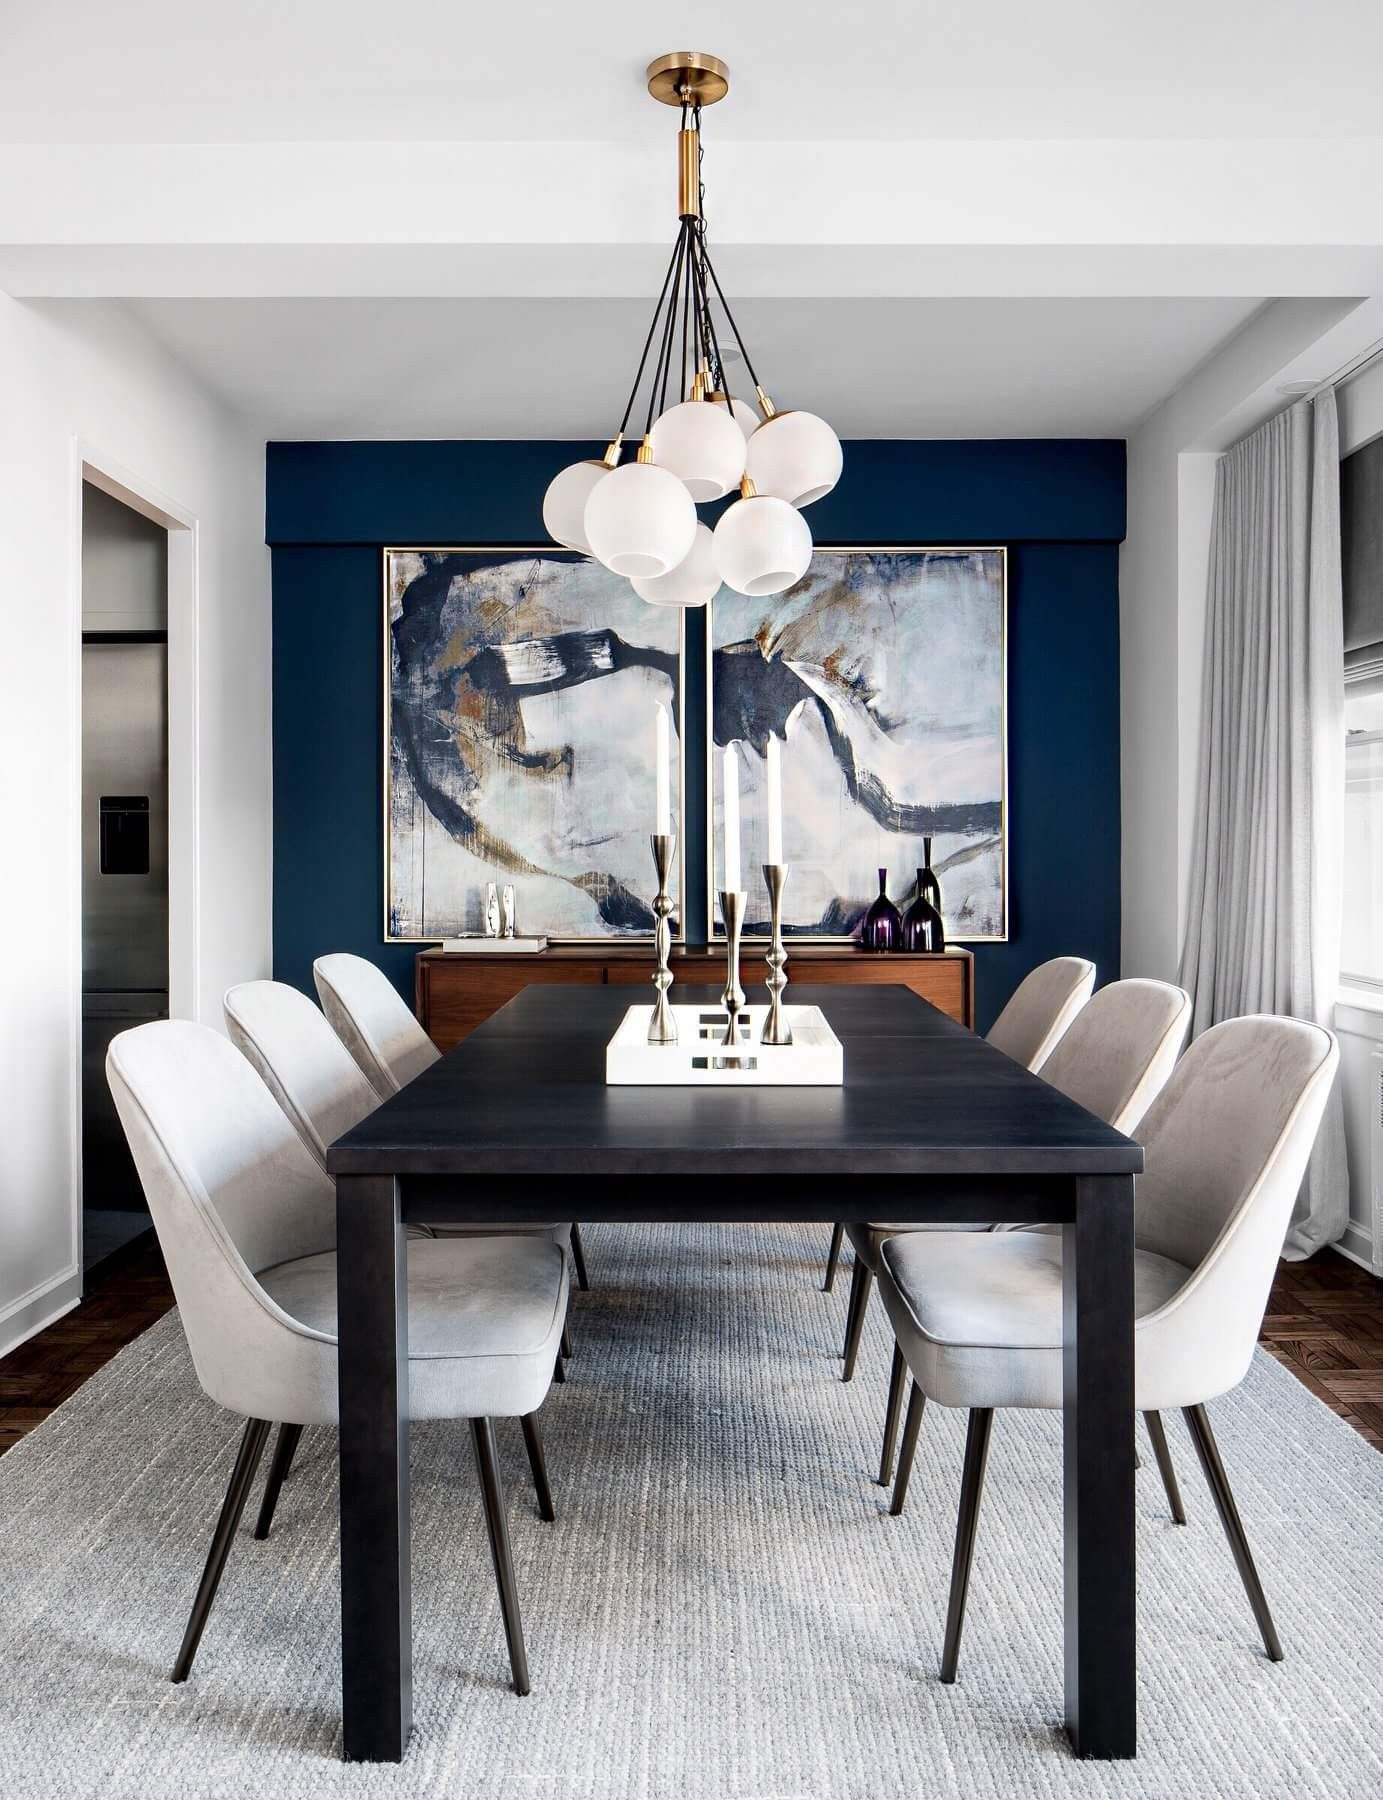 Scandinavian Interior Design Scandinavian Interior Dining Room Blue Black And White Dining Room Small Dining Room Decor